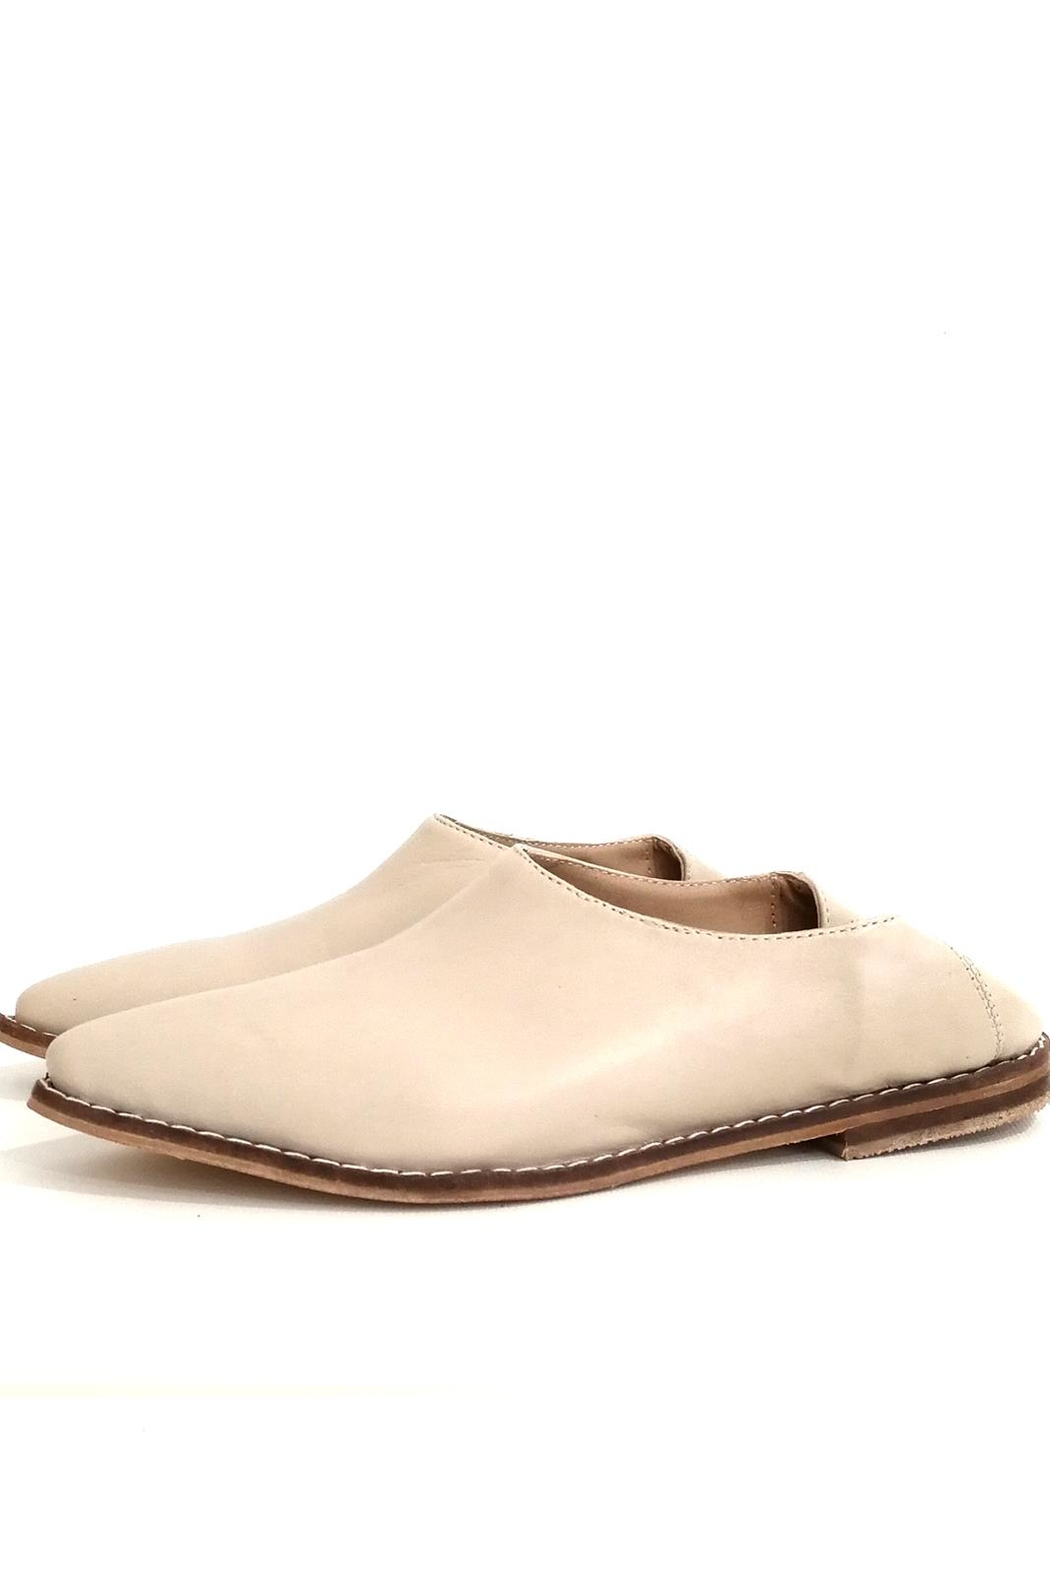 MIYE COLLAZZO Beige Mule Shoes - Front Cropped Image